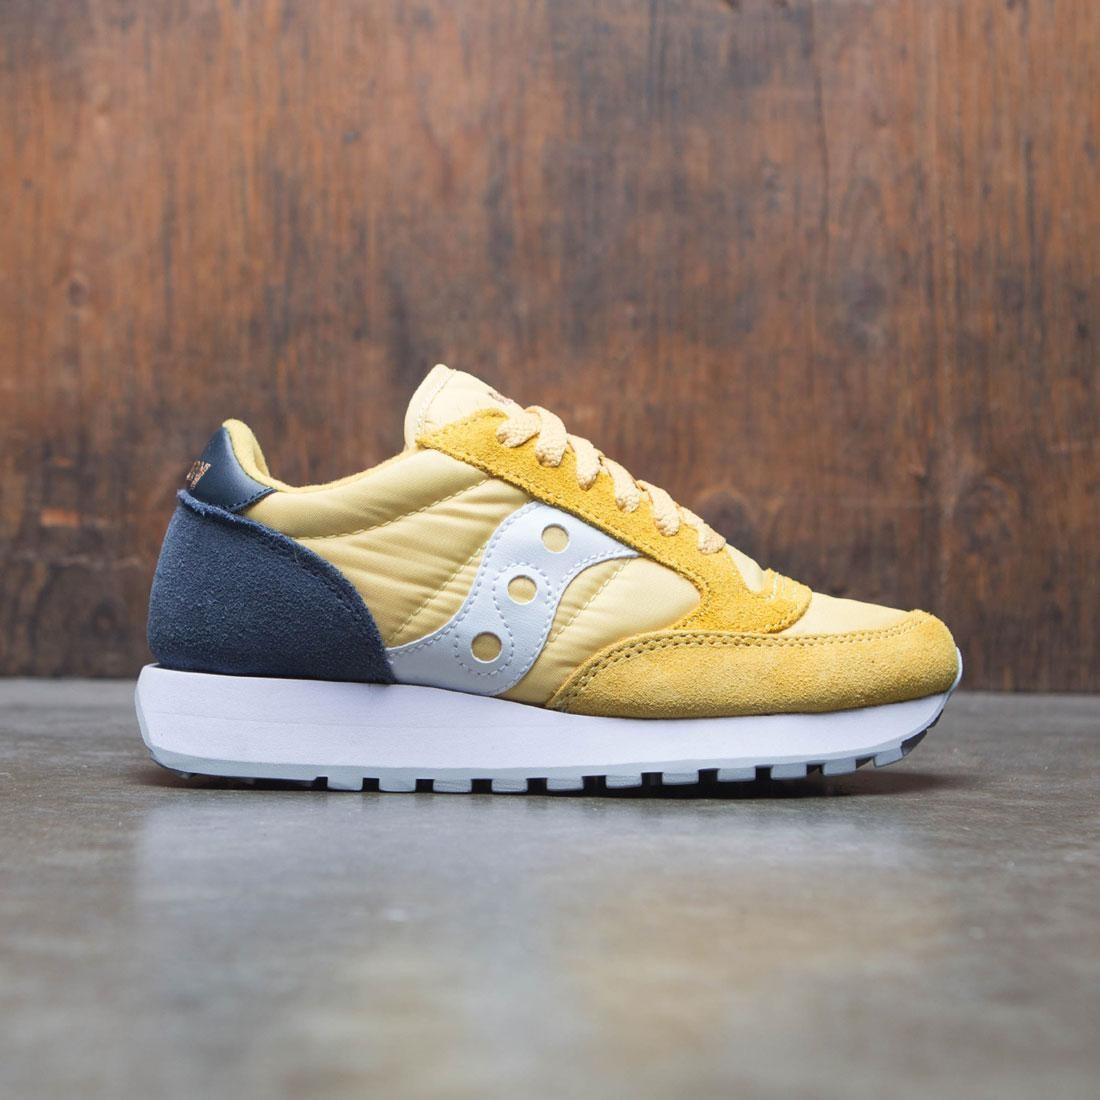 authentic quality delicate colors best wholesaler saucony jazz original yellow shoes off 73% - www ...